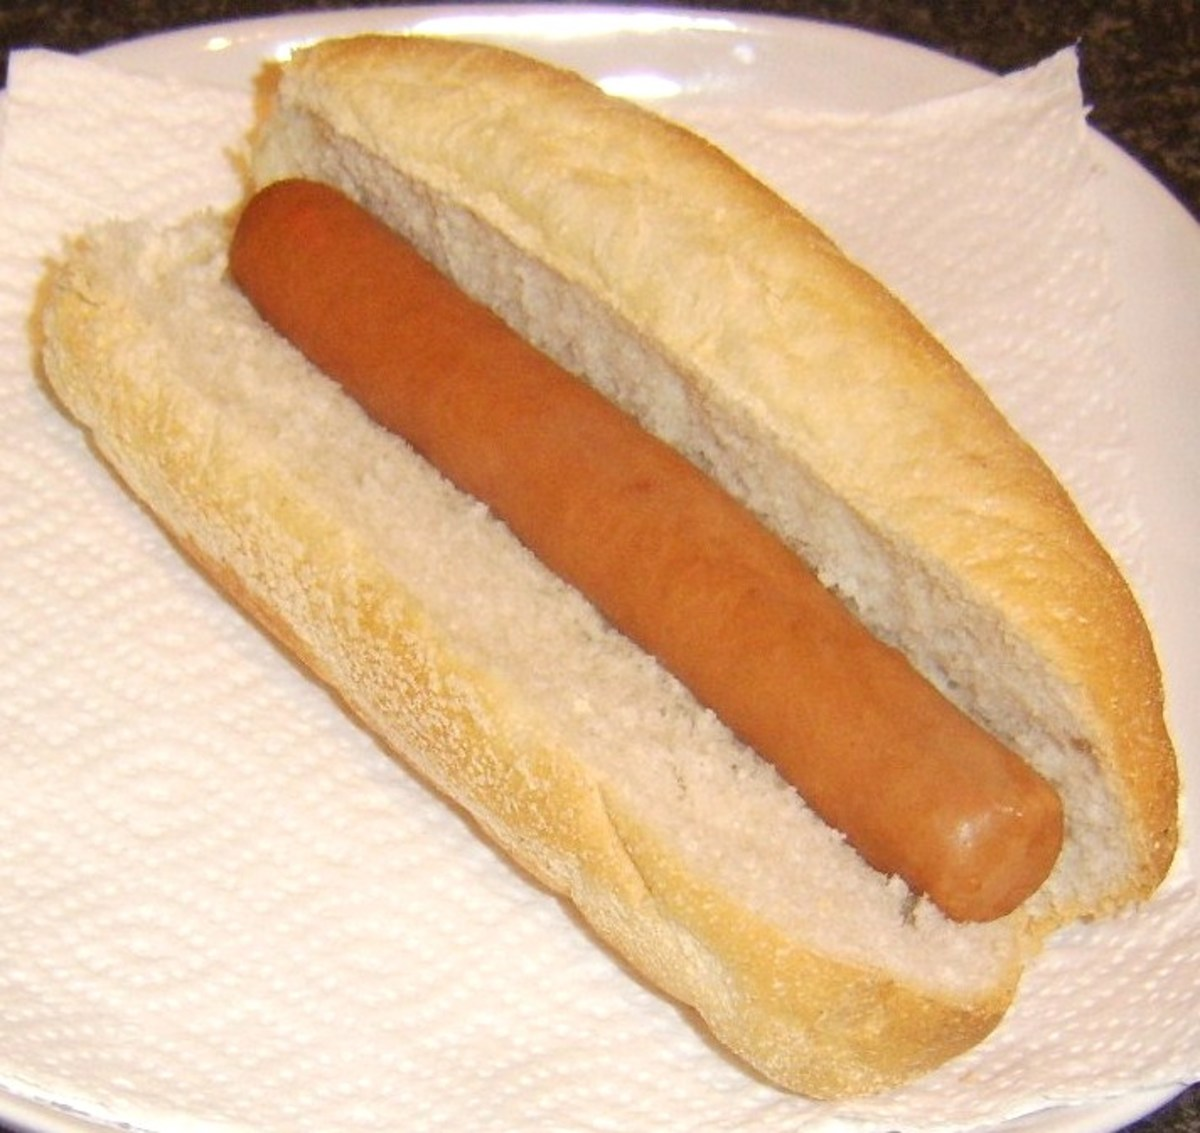 Hot dog is added to sub roll